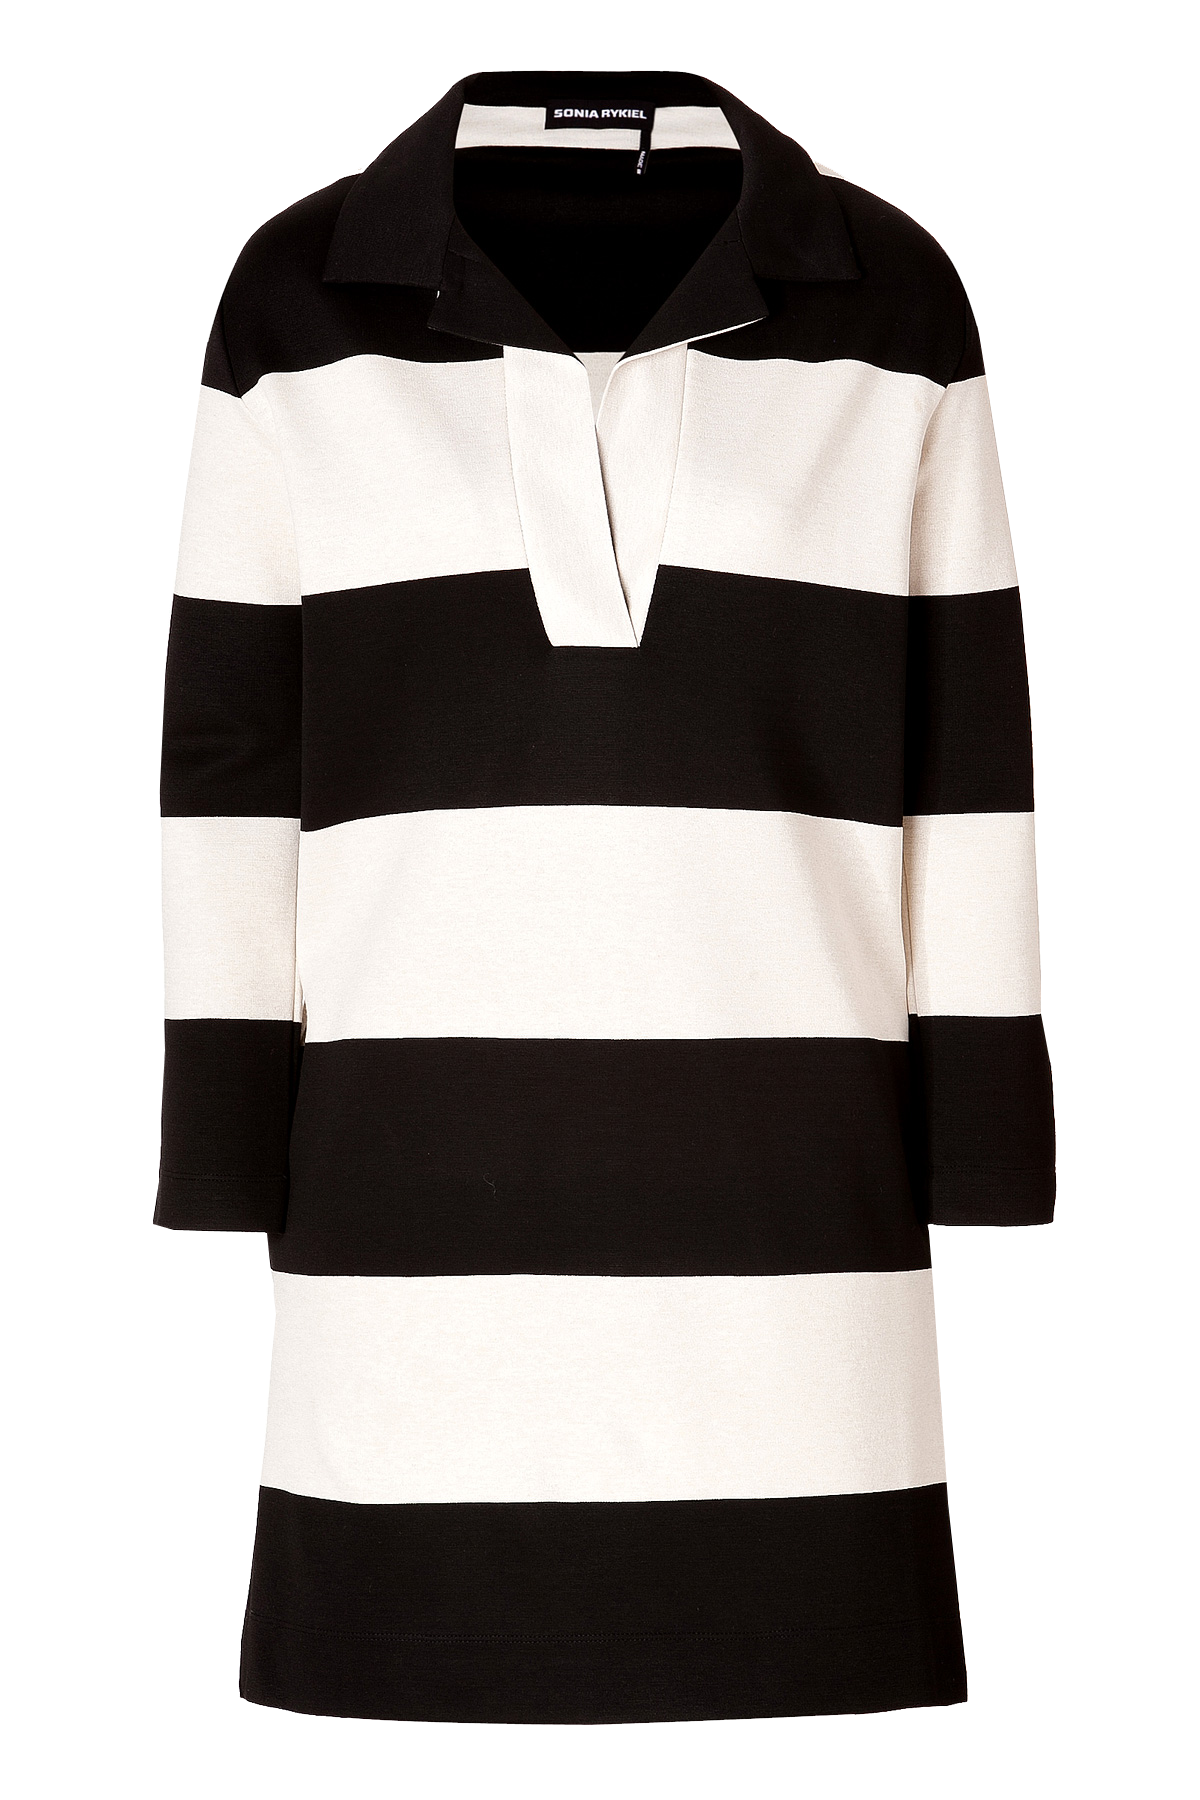 Sonia Rykiel stripe Knit Dress Black Off-White